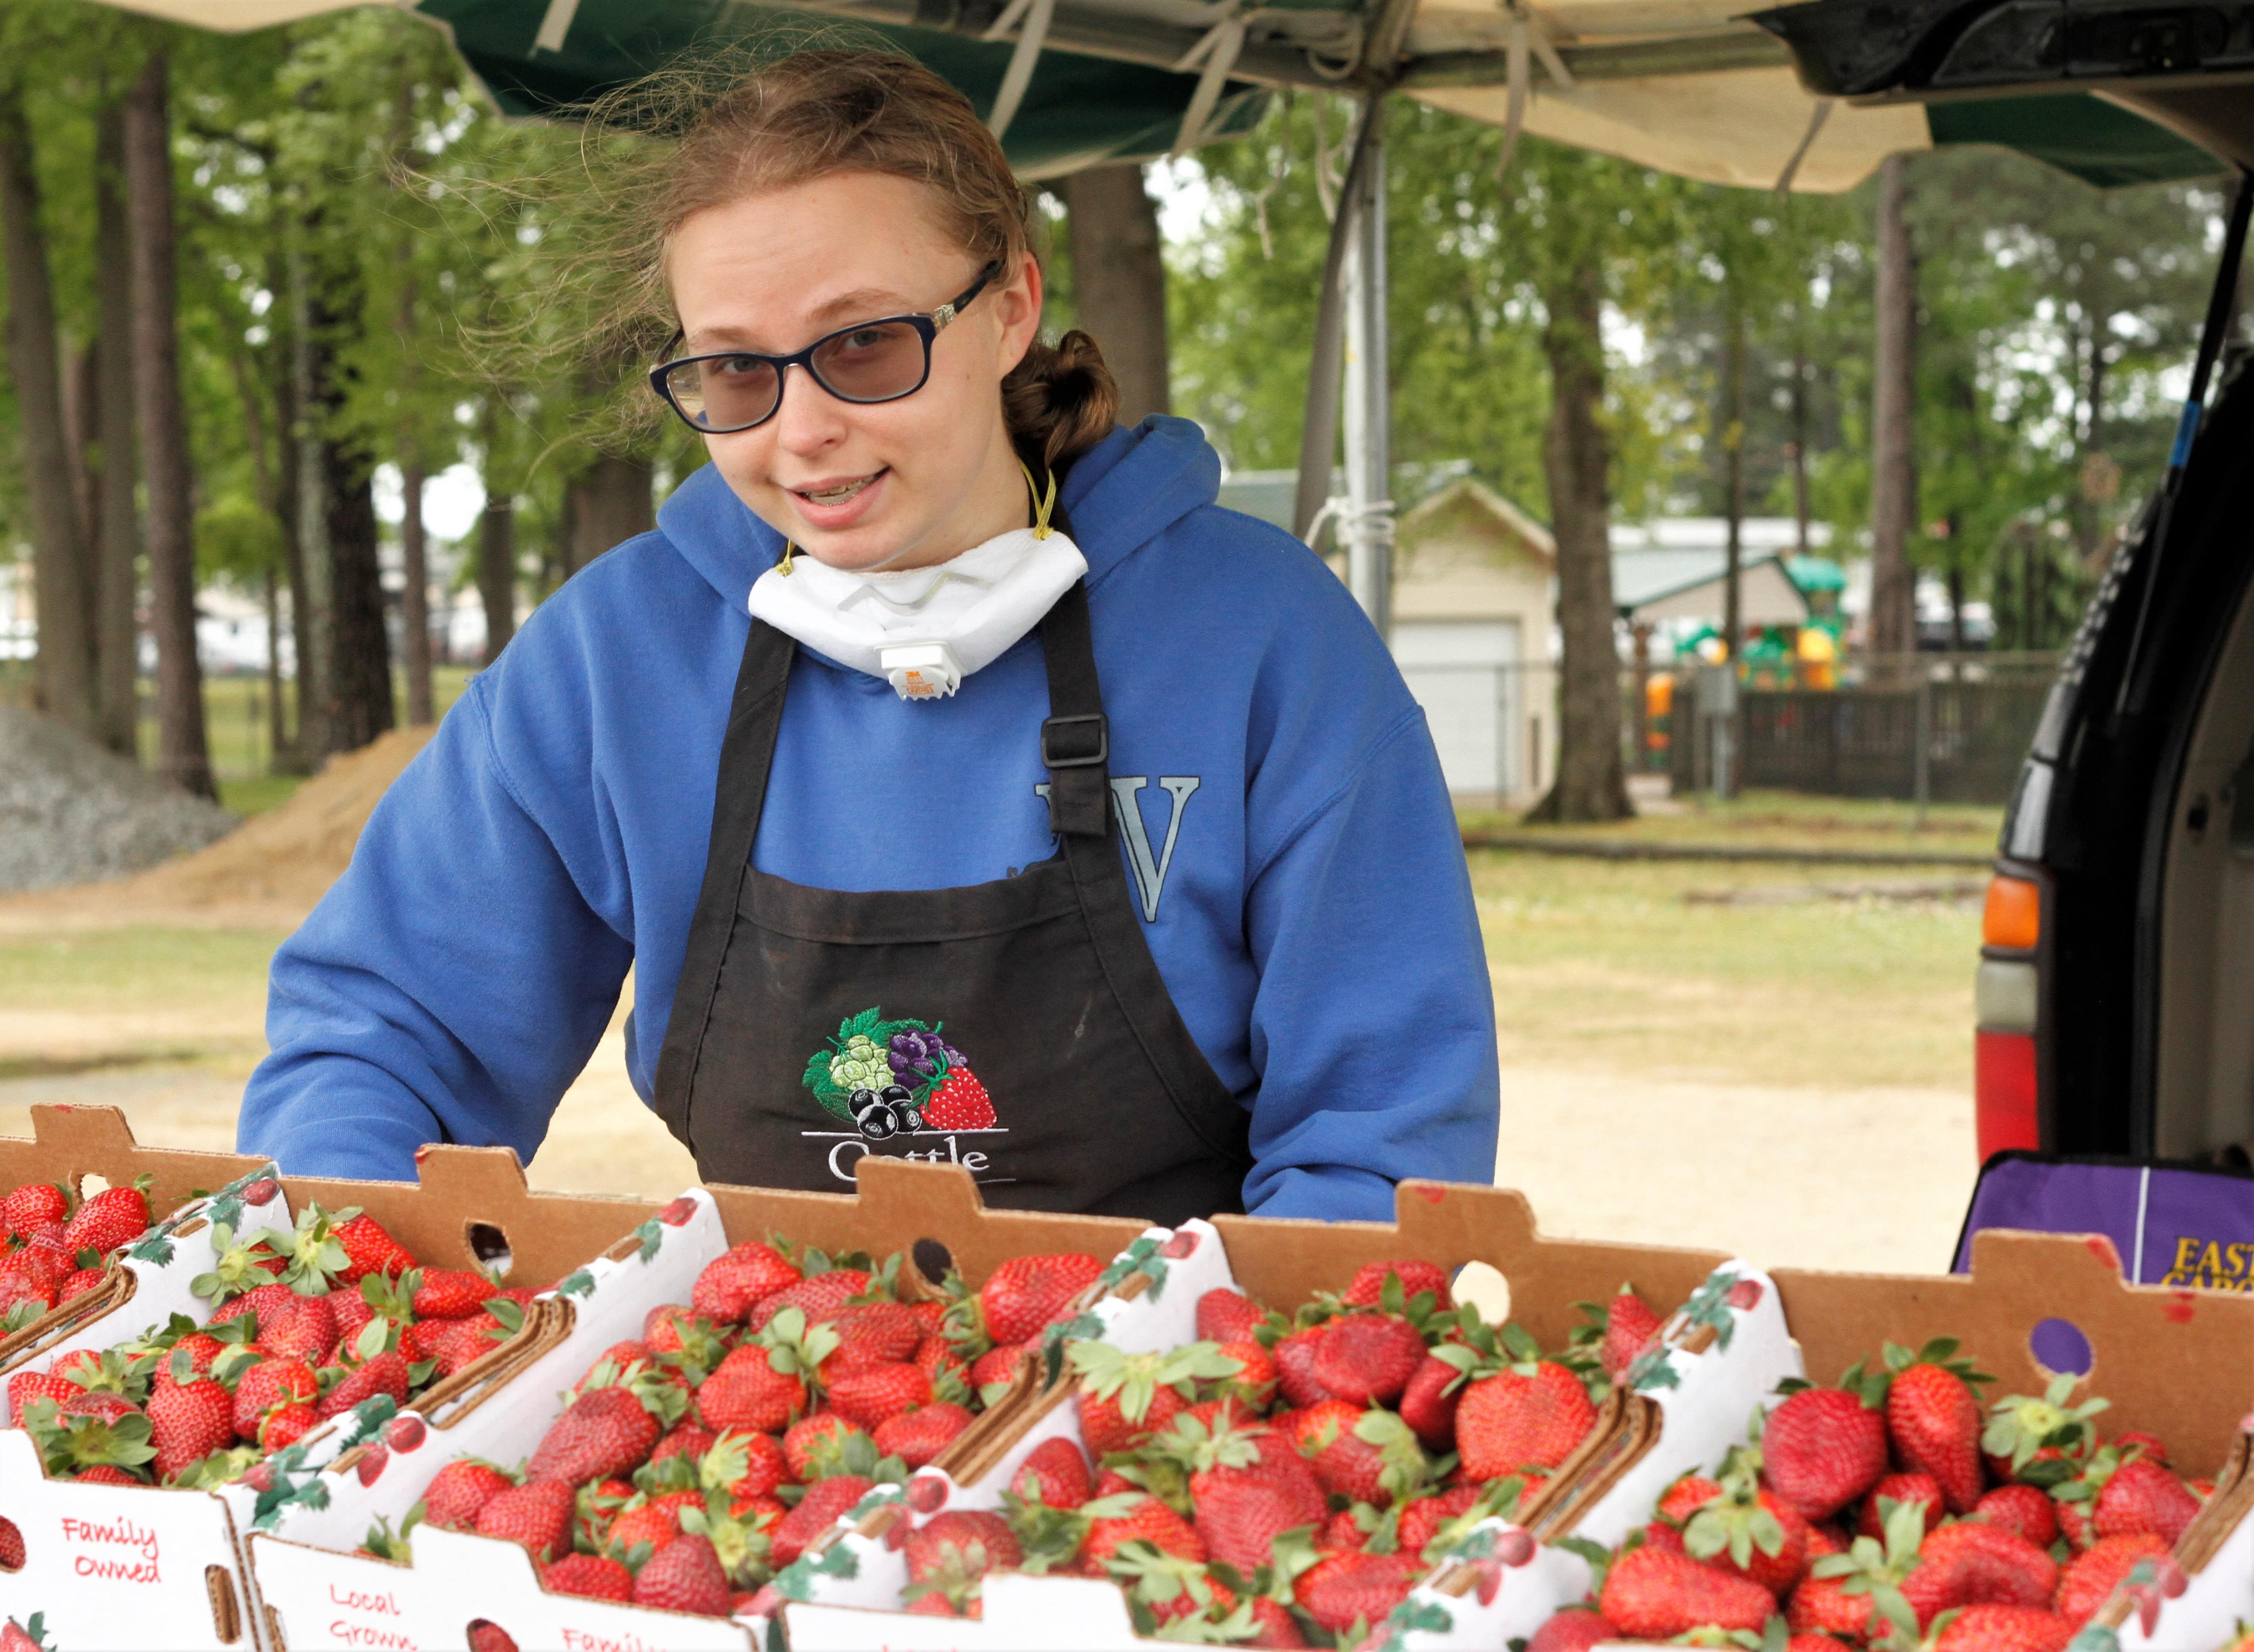 PIC OF THE DAY: Strawberry Season Starts